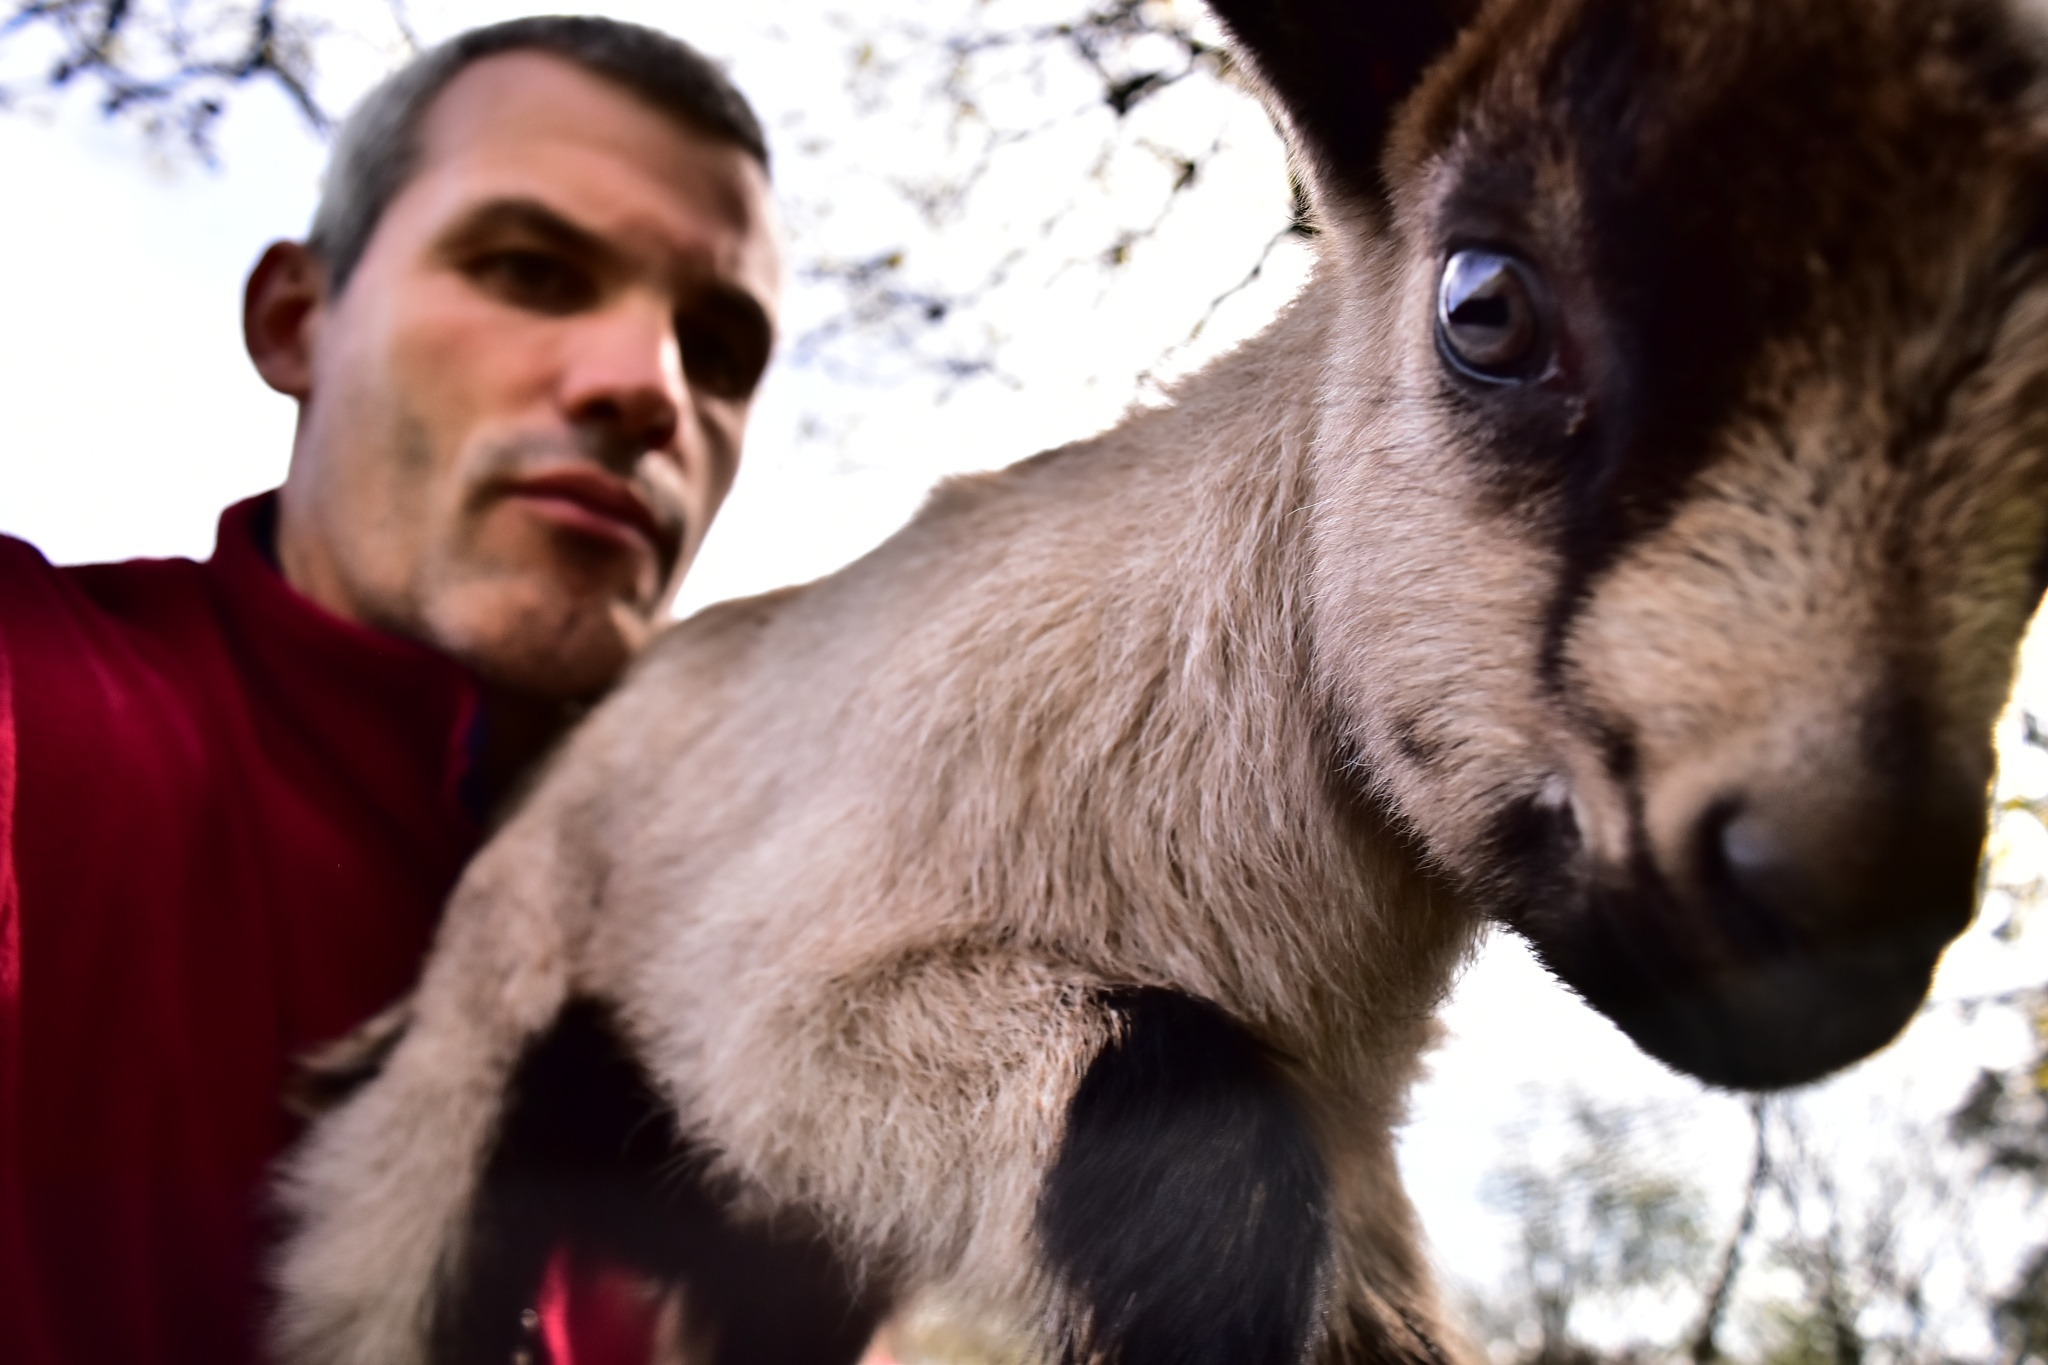 Baby goat & Me by Marc Leroy